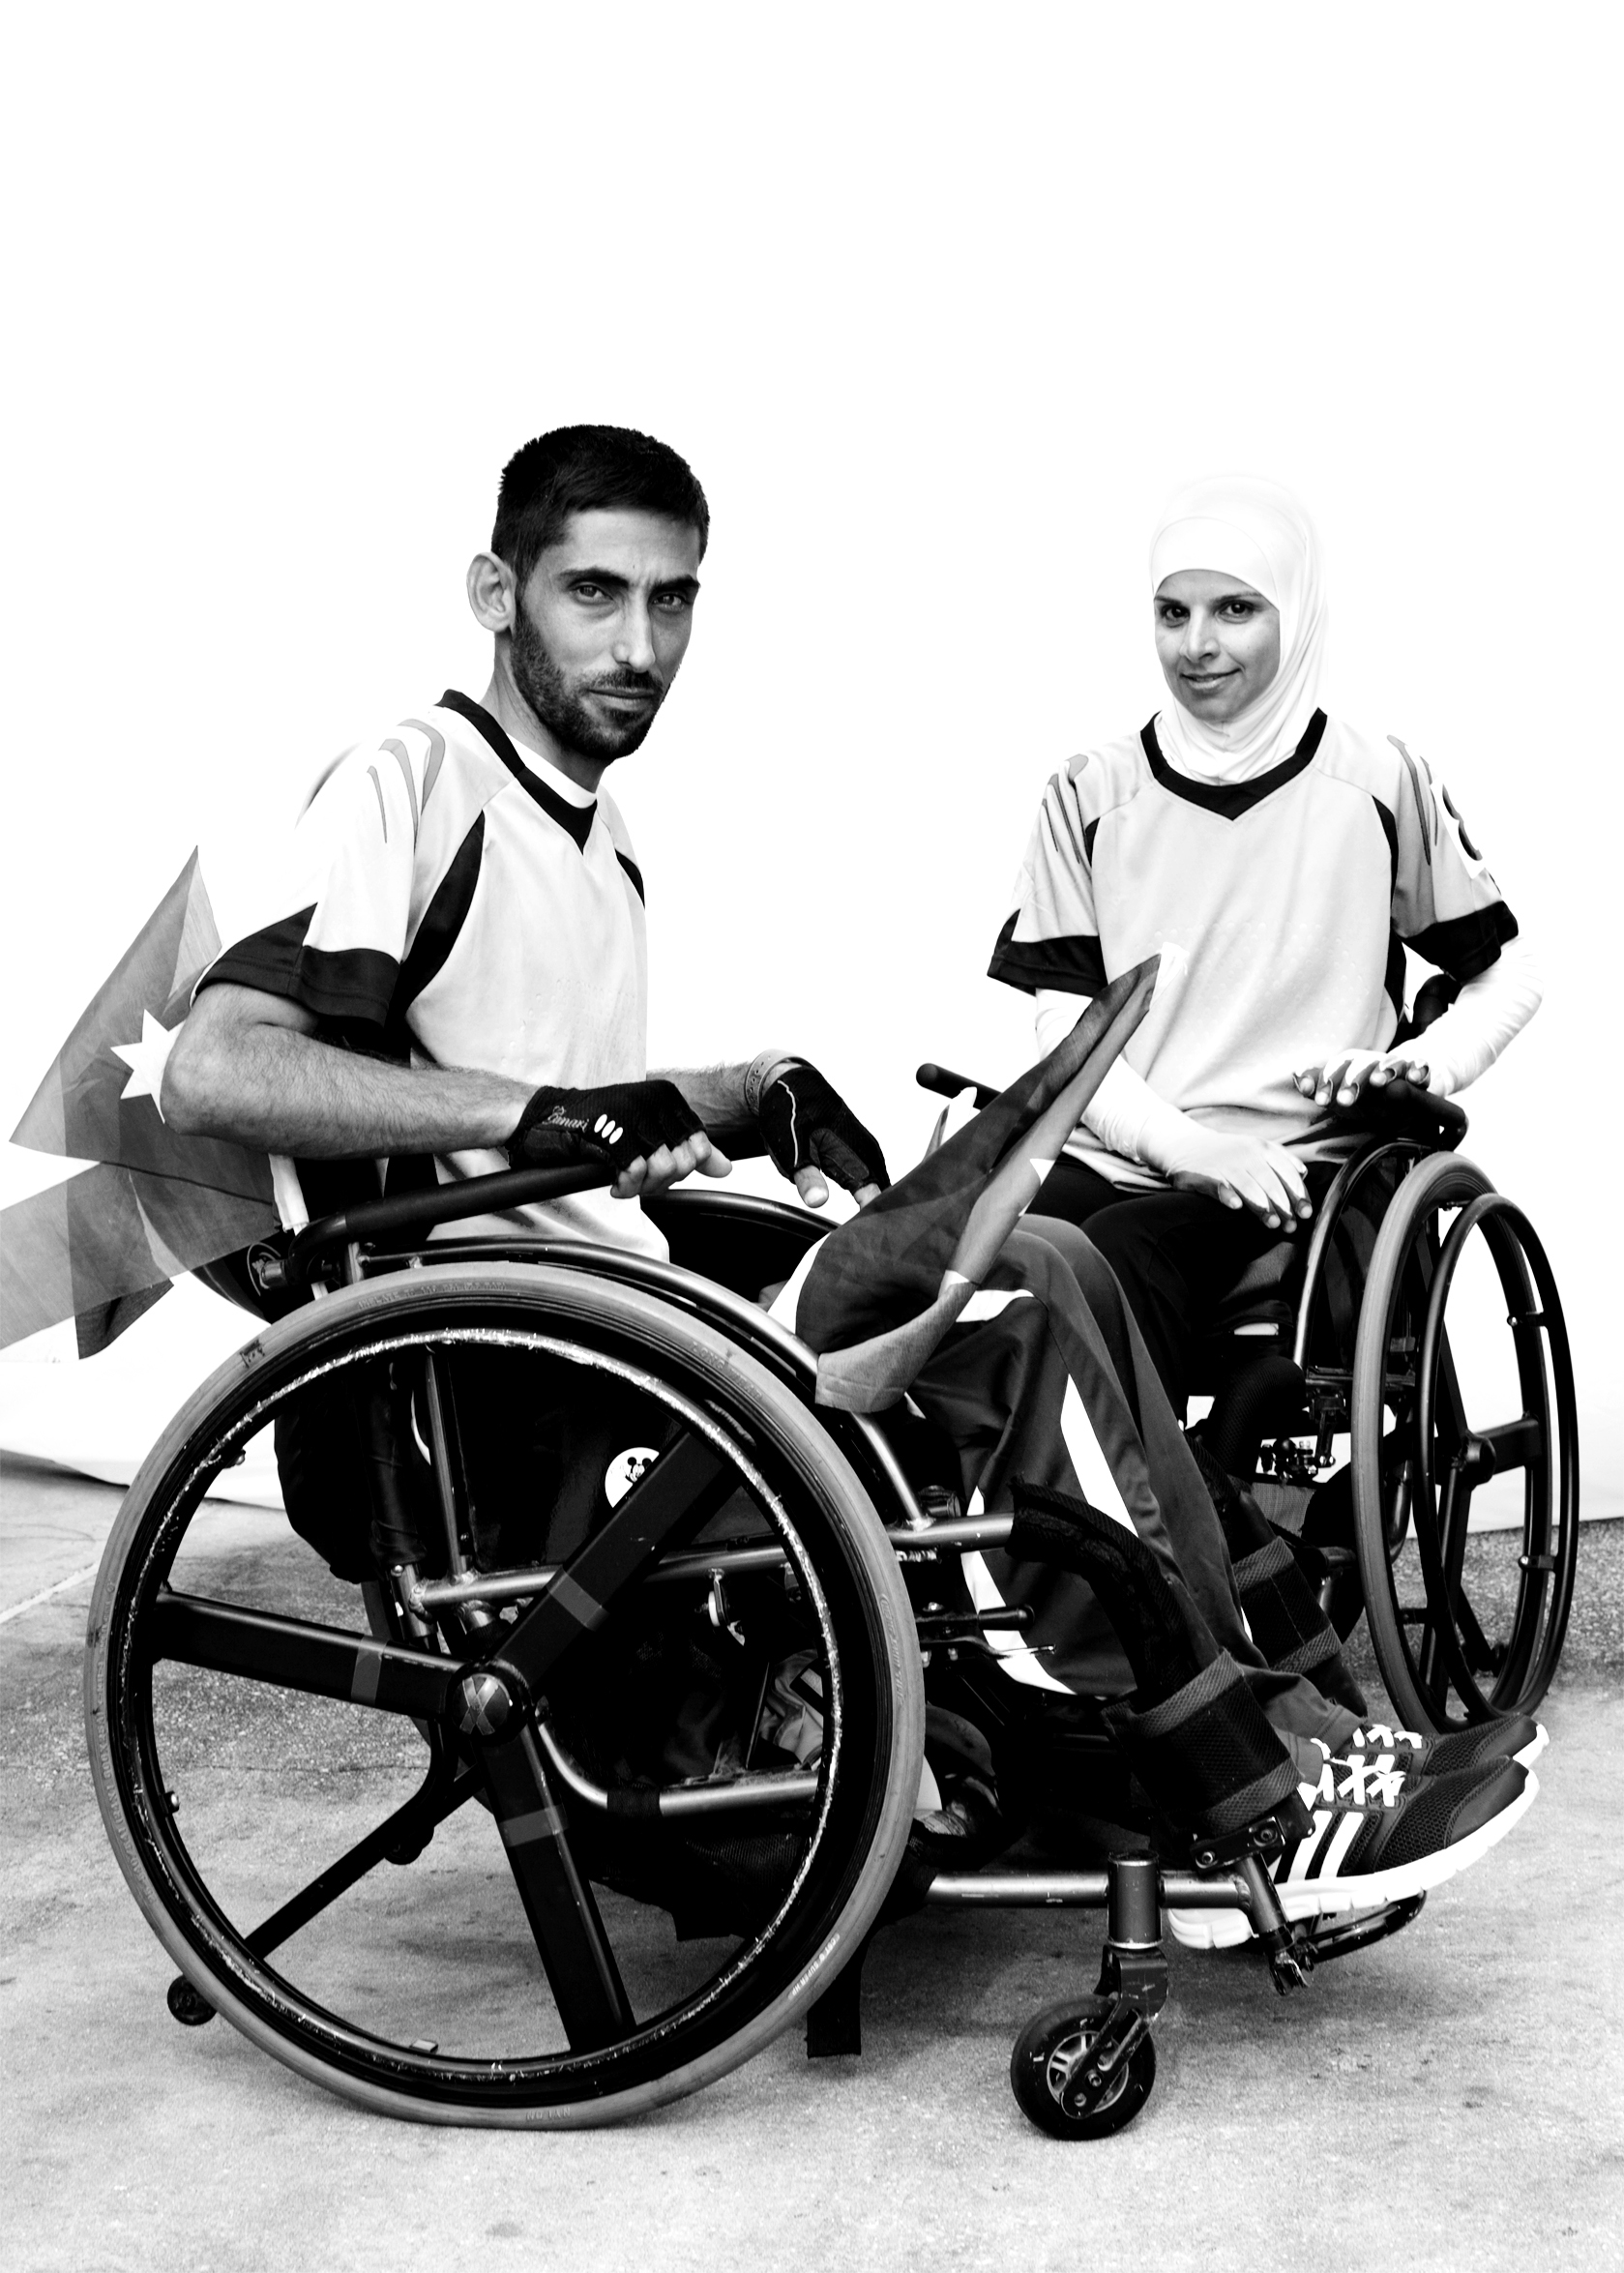 Hamzeh Qudah (left) and Ulfat Al-Zwiri (right), Jordan, competed in track